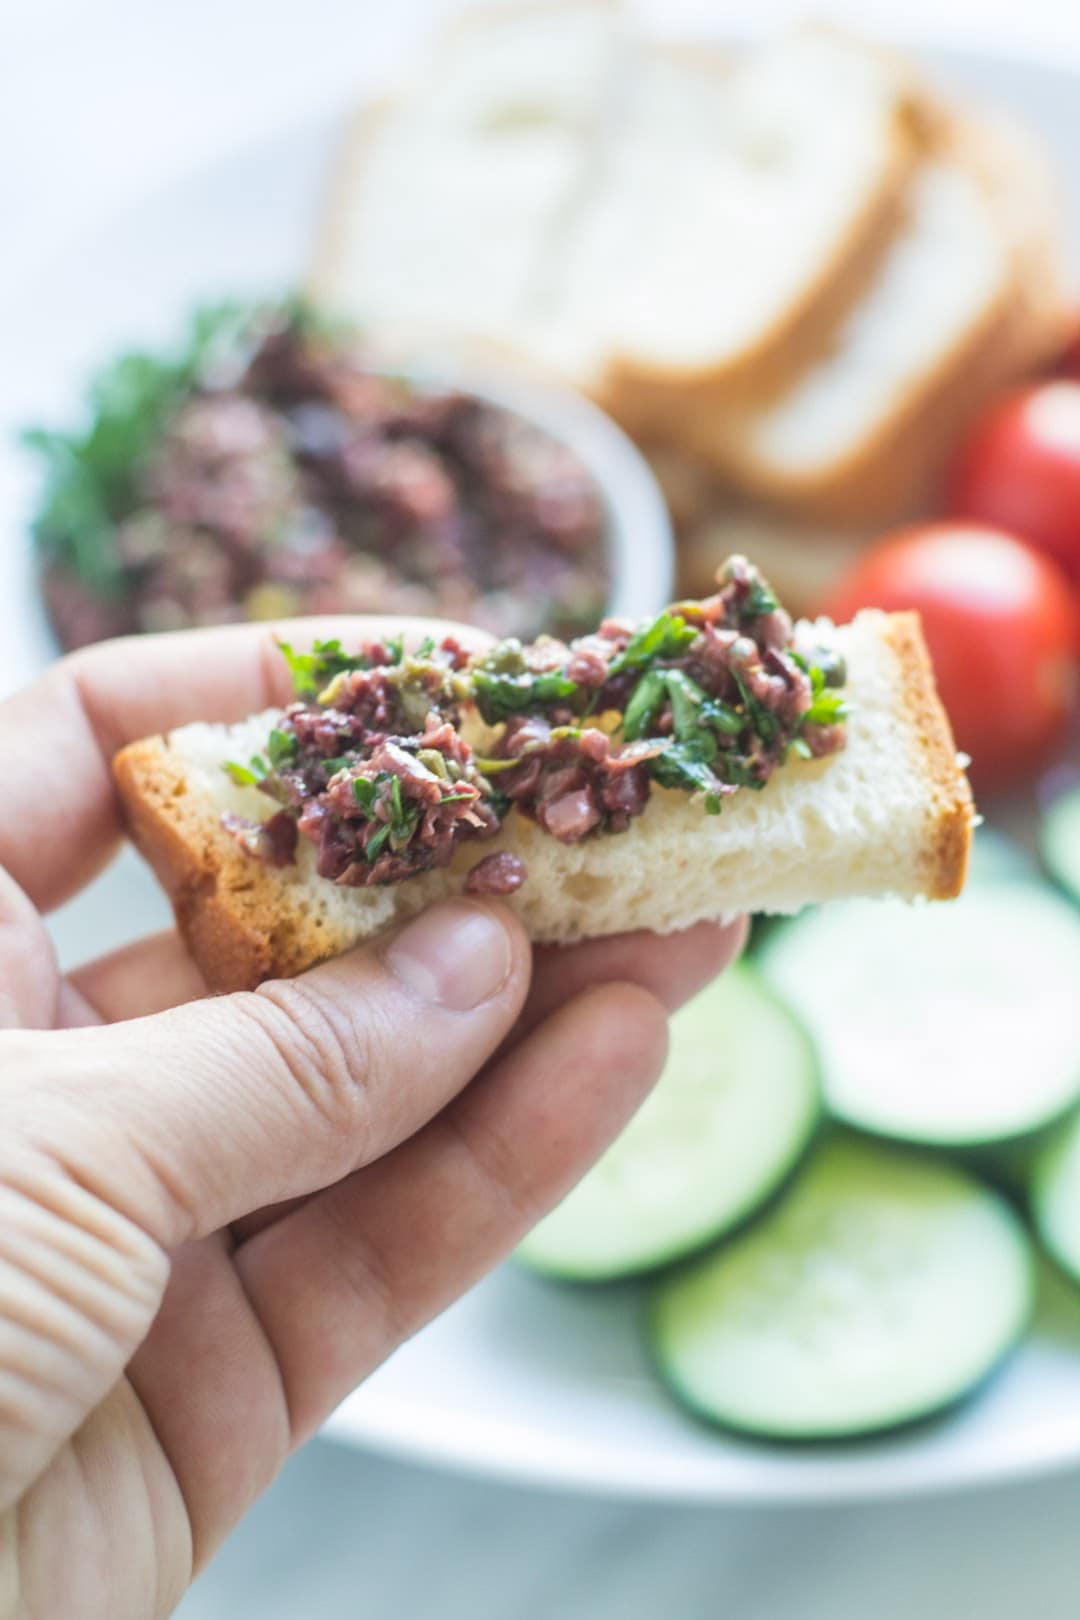 Piece of gluten-free bread topped with low FODMAP olive tapenade